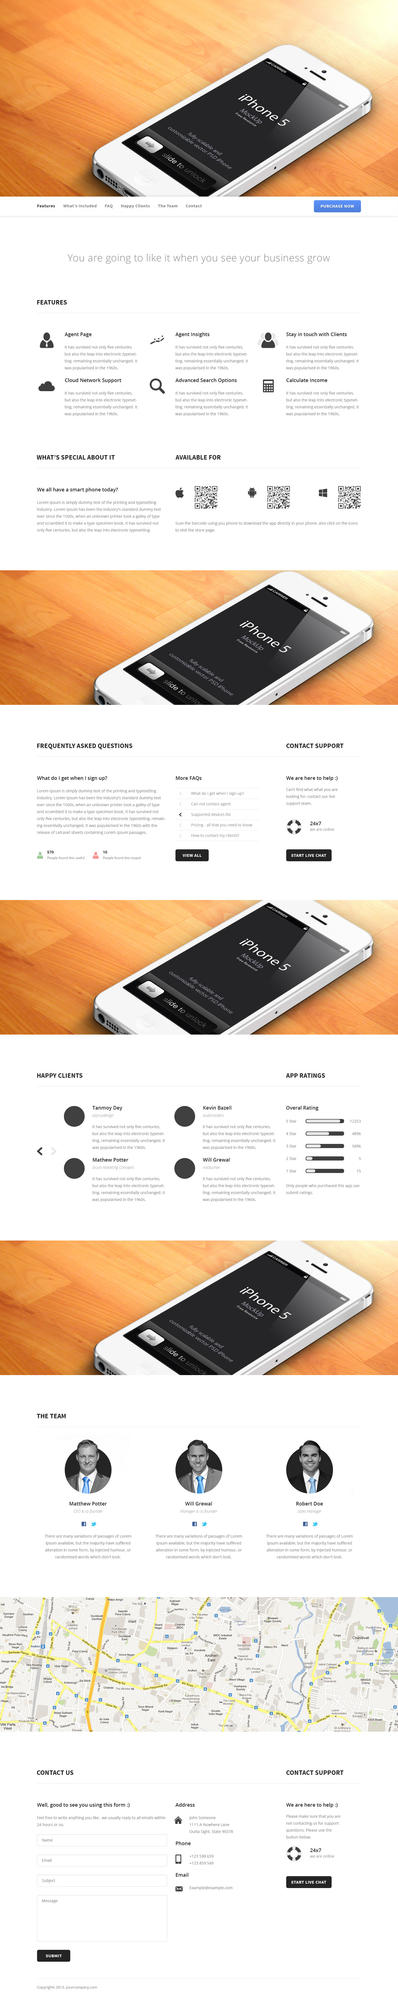 Mobile App Website by azyrusmax